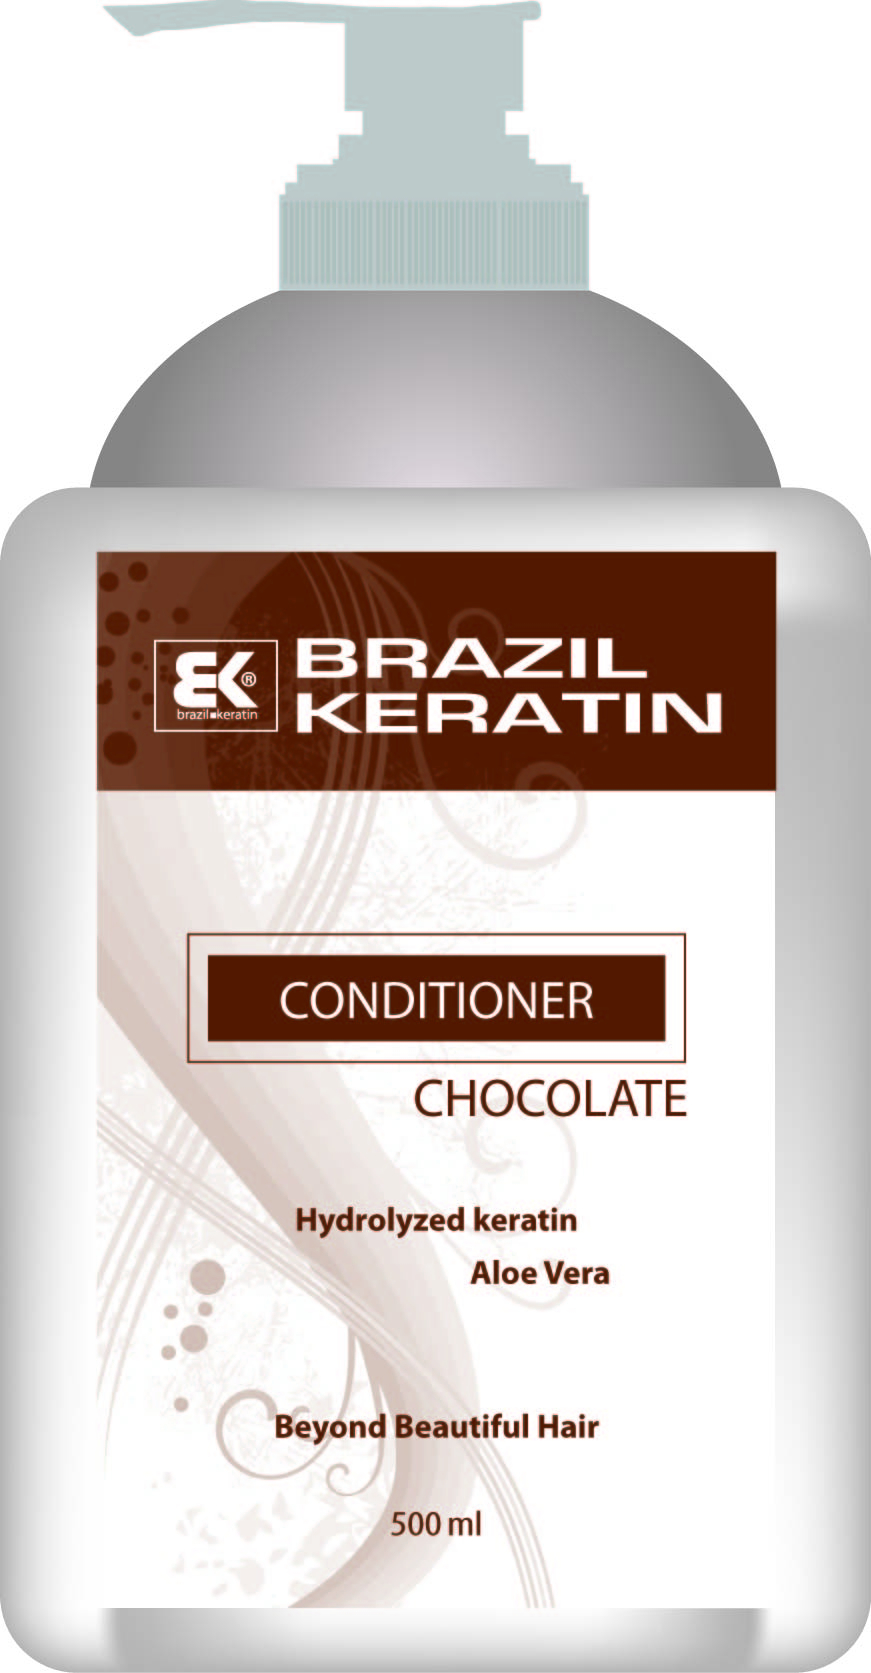 BK Brazil Keratin Intensive Repair Chocolate Conditioner 500 ml - keratinový regenerační kondicionér 500 ml